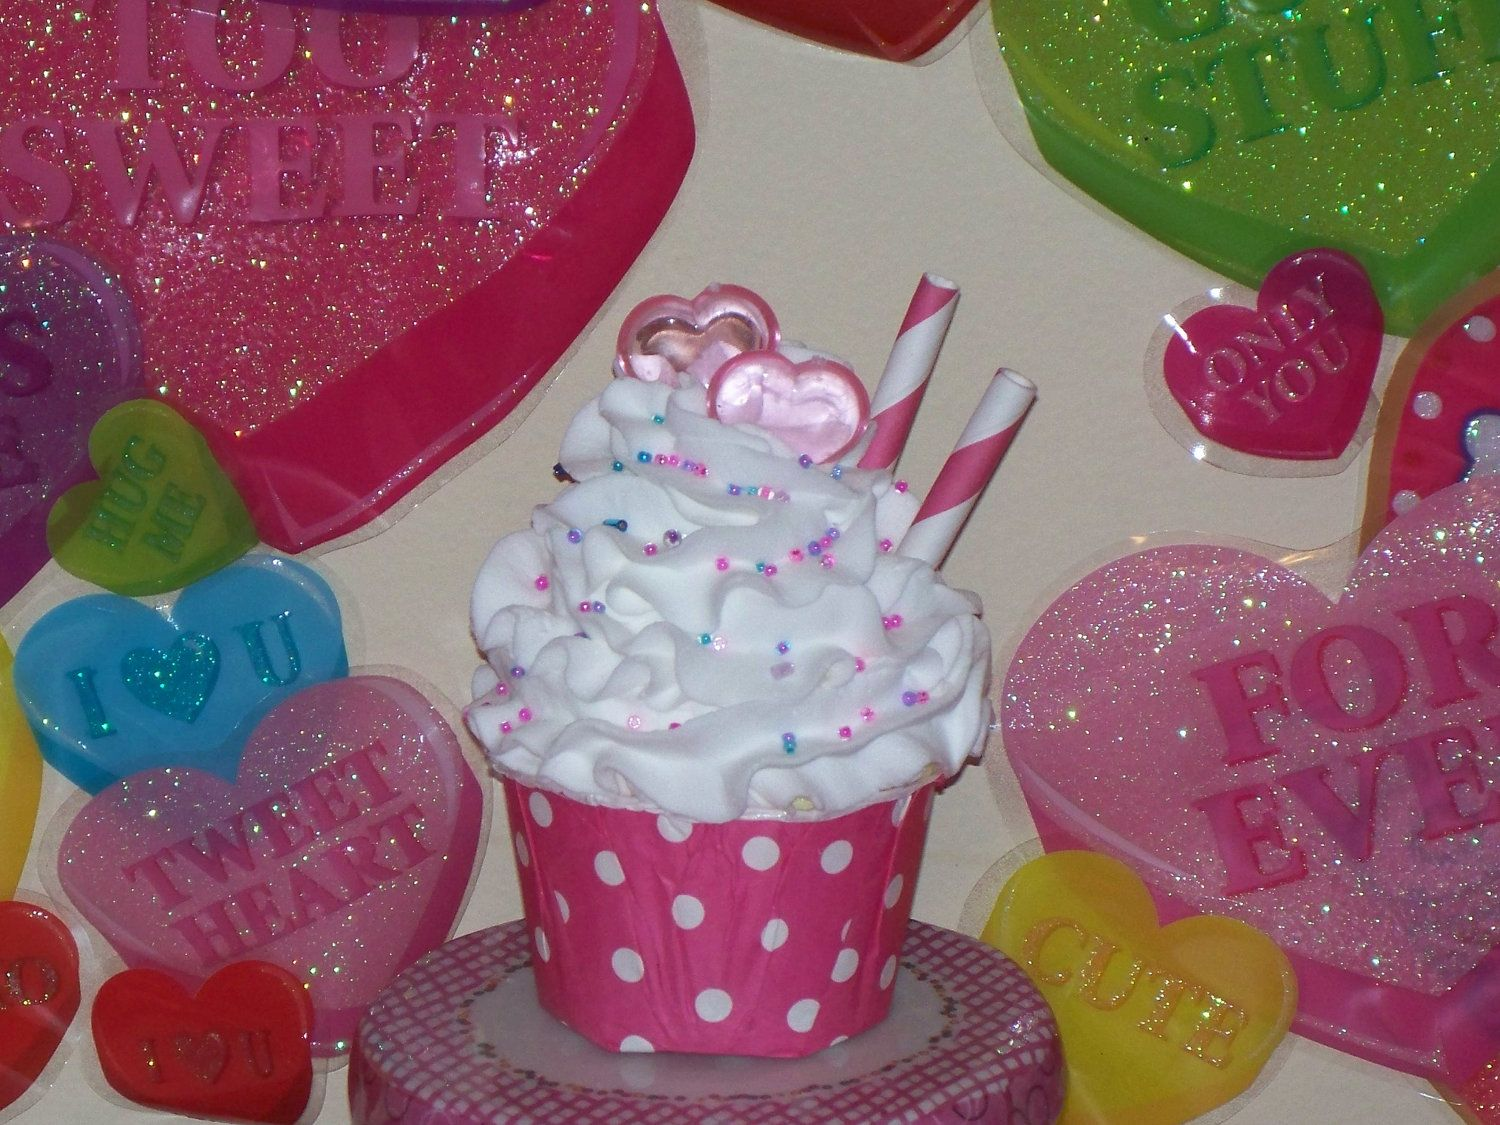 Pink Polka Dot Valentine Fake Cupcake with Hearts, Straws, and Sprinkles great Photo Props, Party Decorations, Home Display. $10.25, via Etsy.